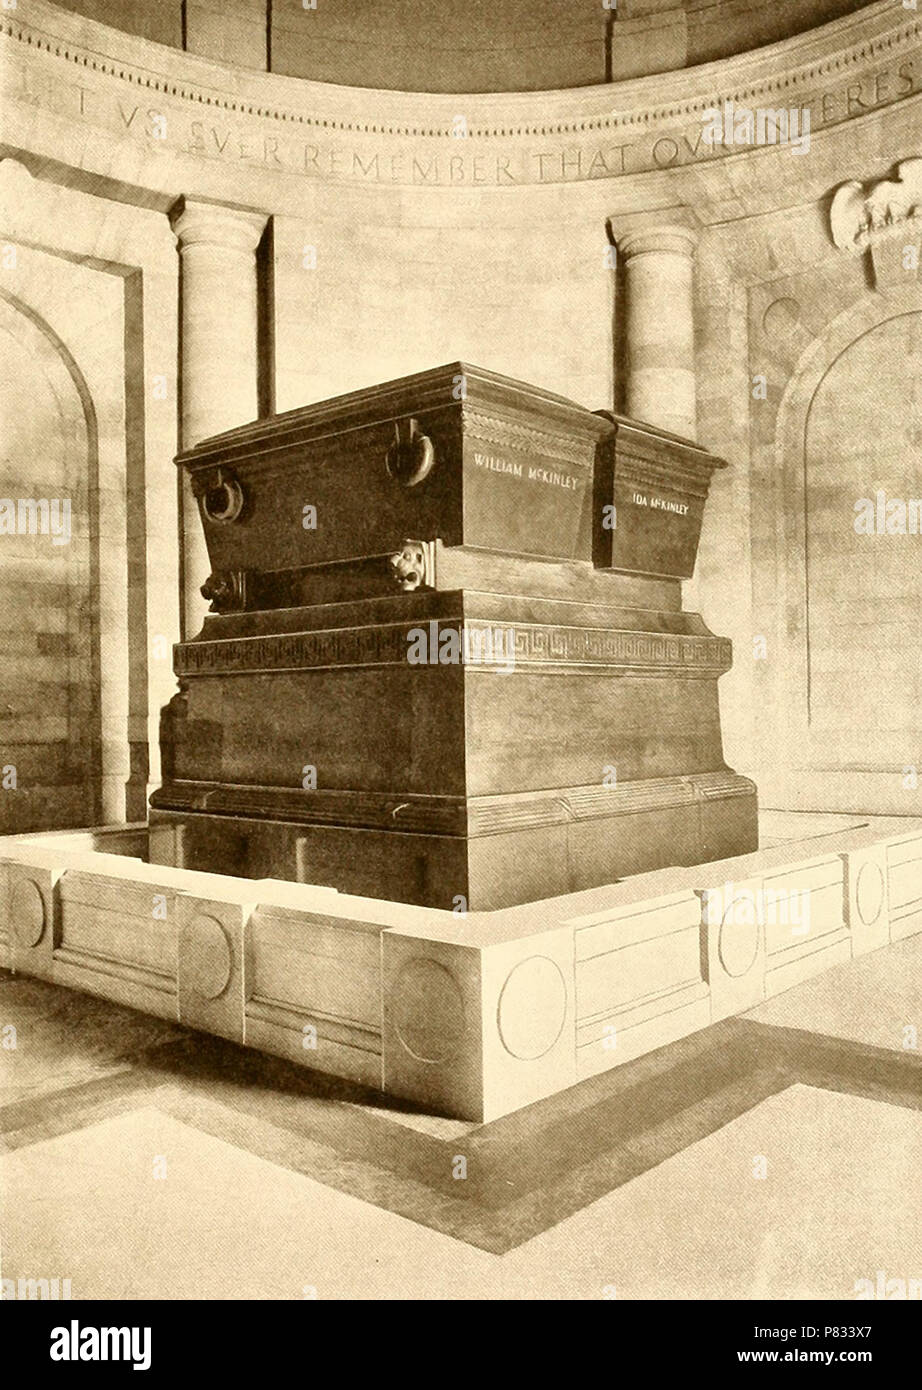 Interior of the Mausoleum - The Sarcophagi. President William McKinley Memorial at the time of it's dedication, October 1907. Canton, Ohio - Stock Image